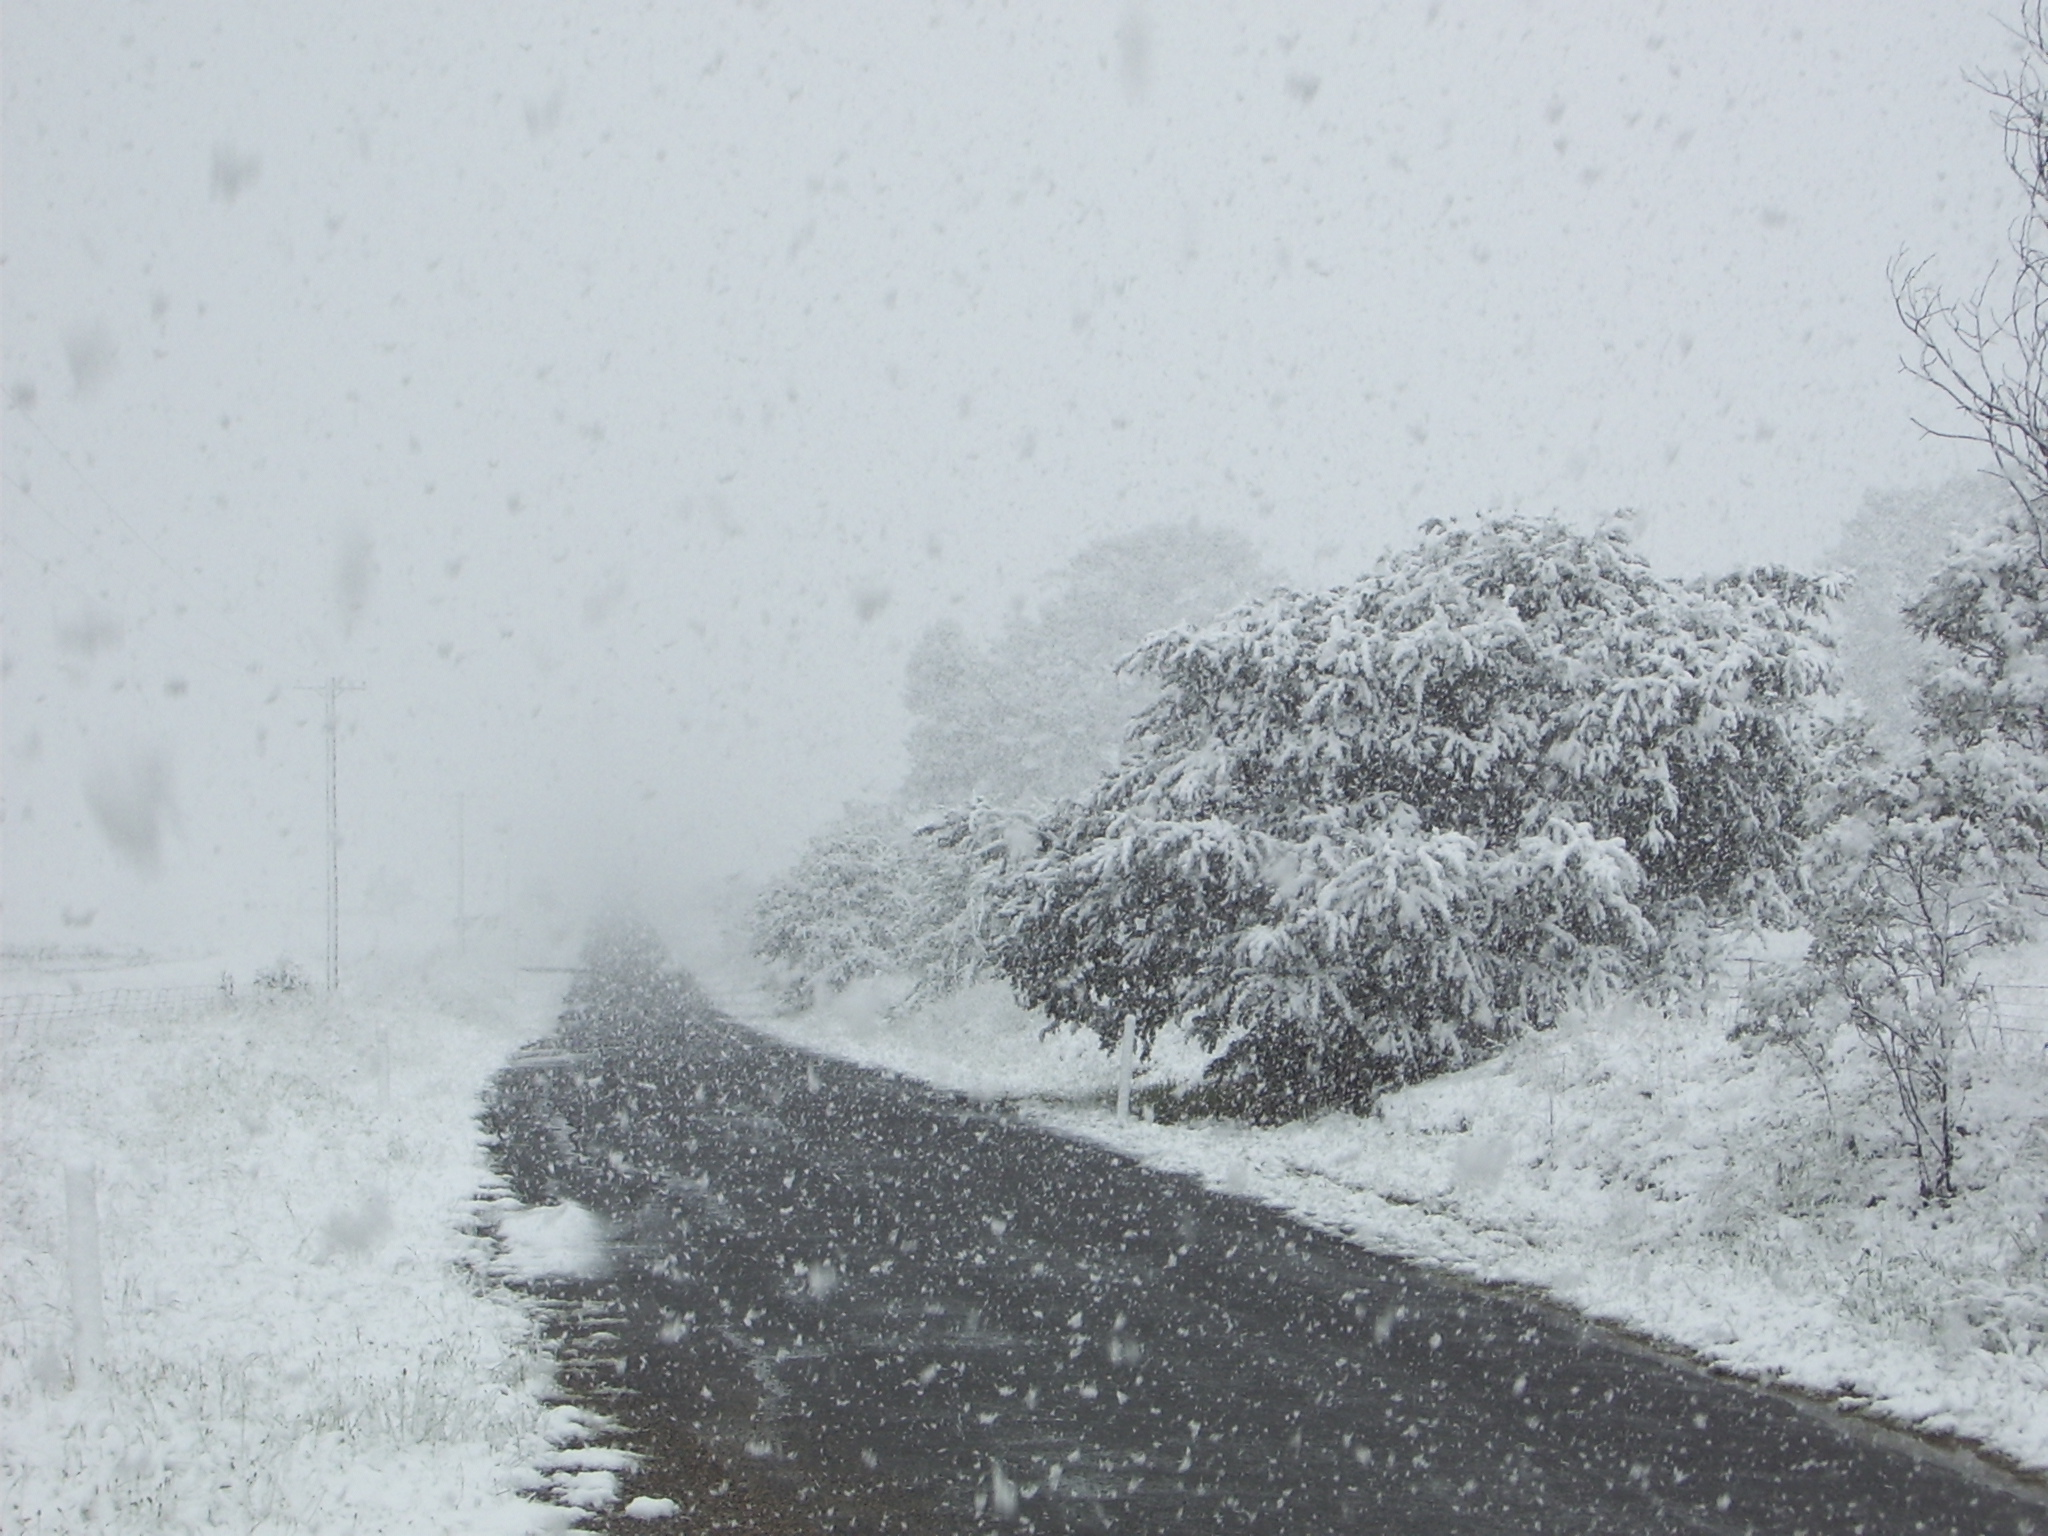 Road covered in snow